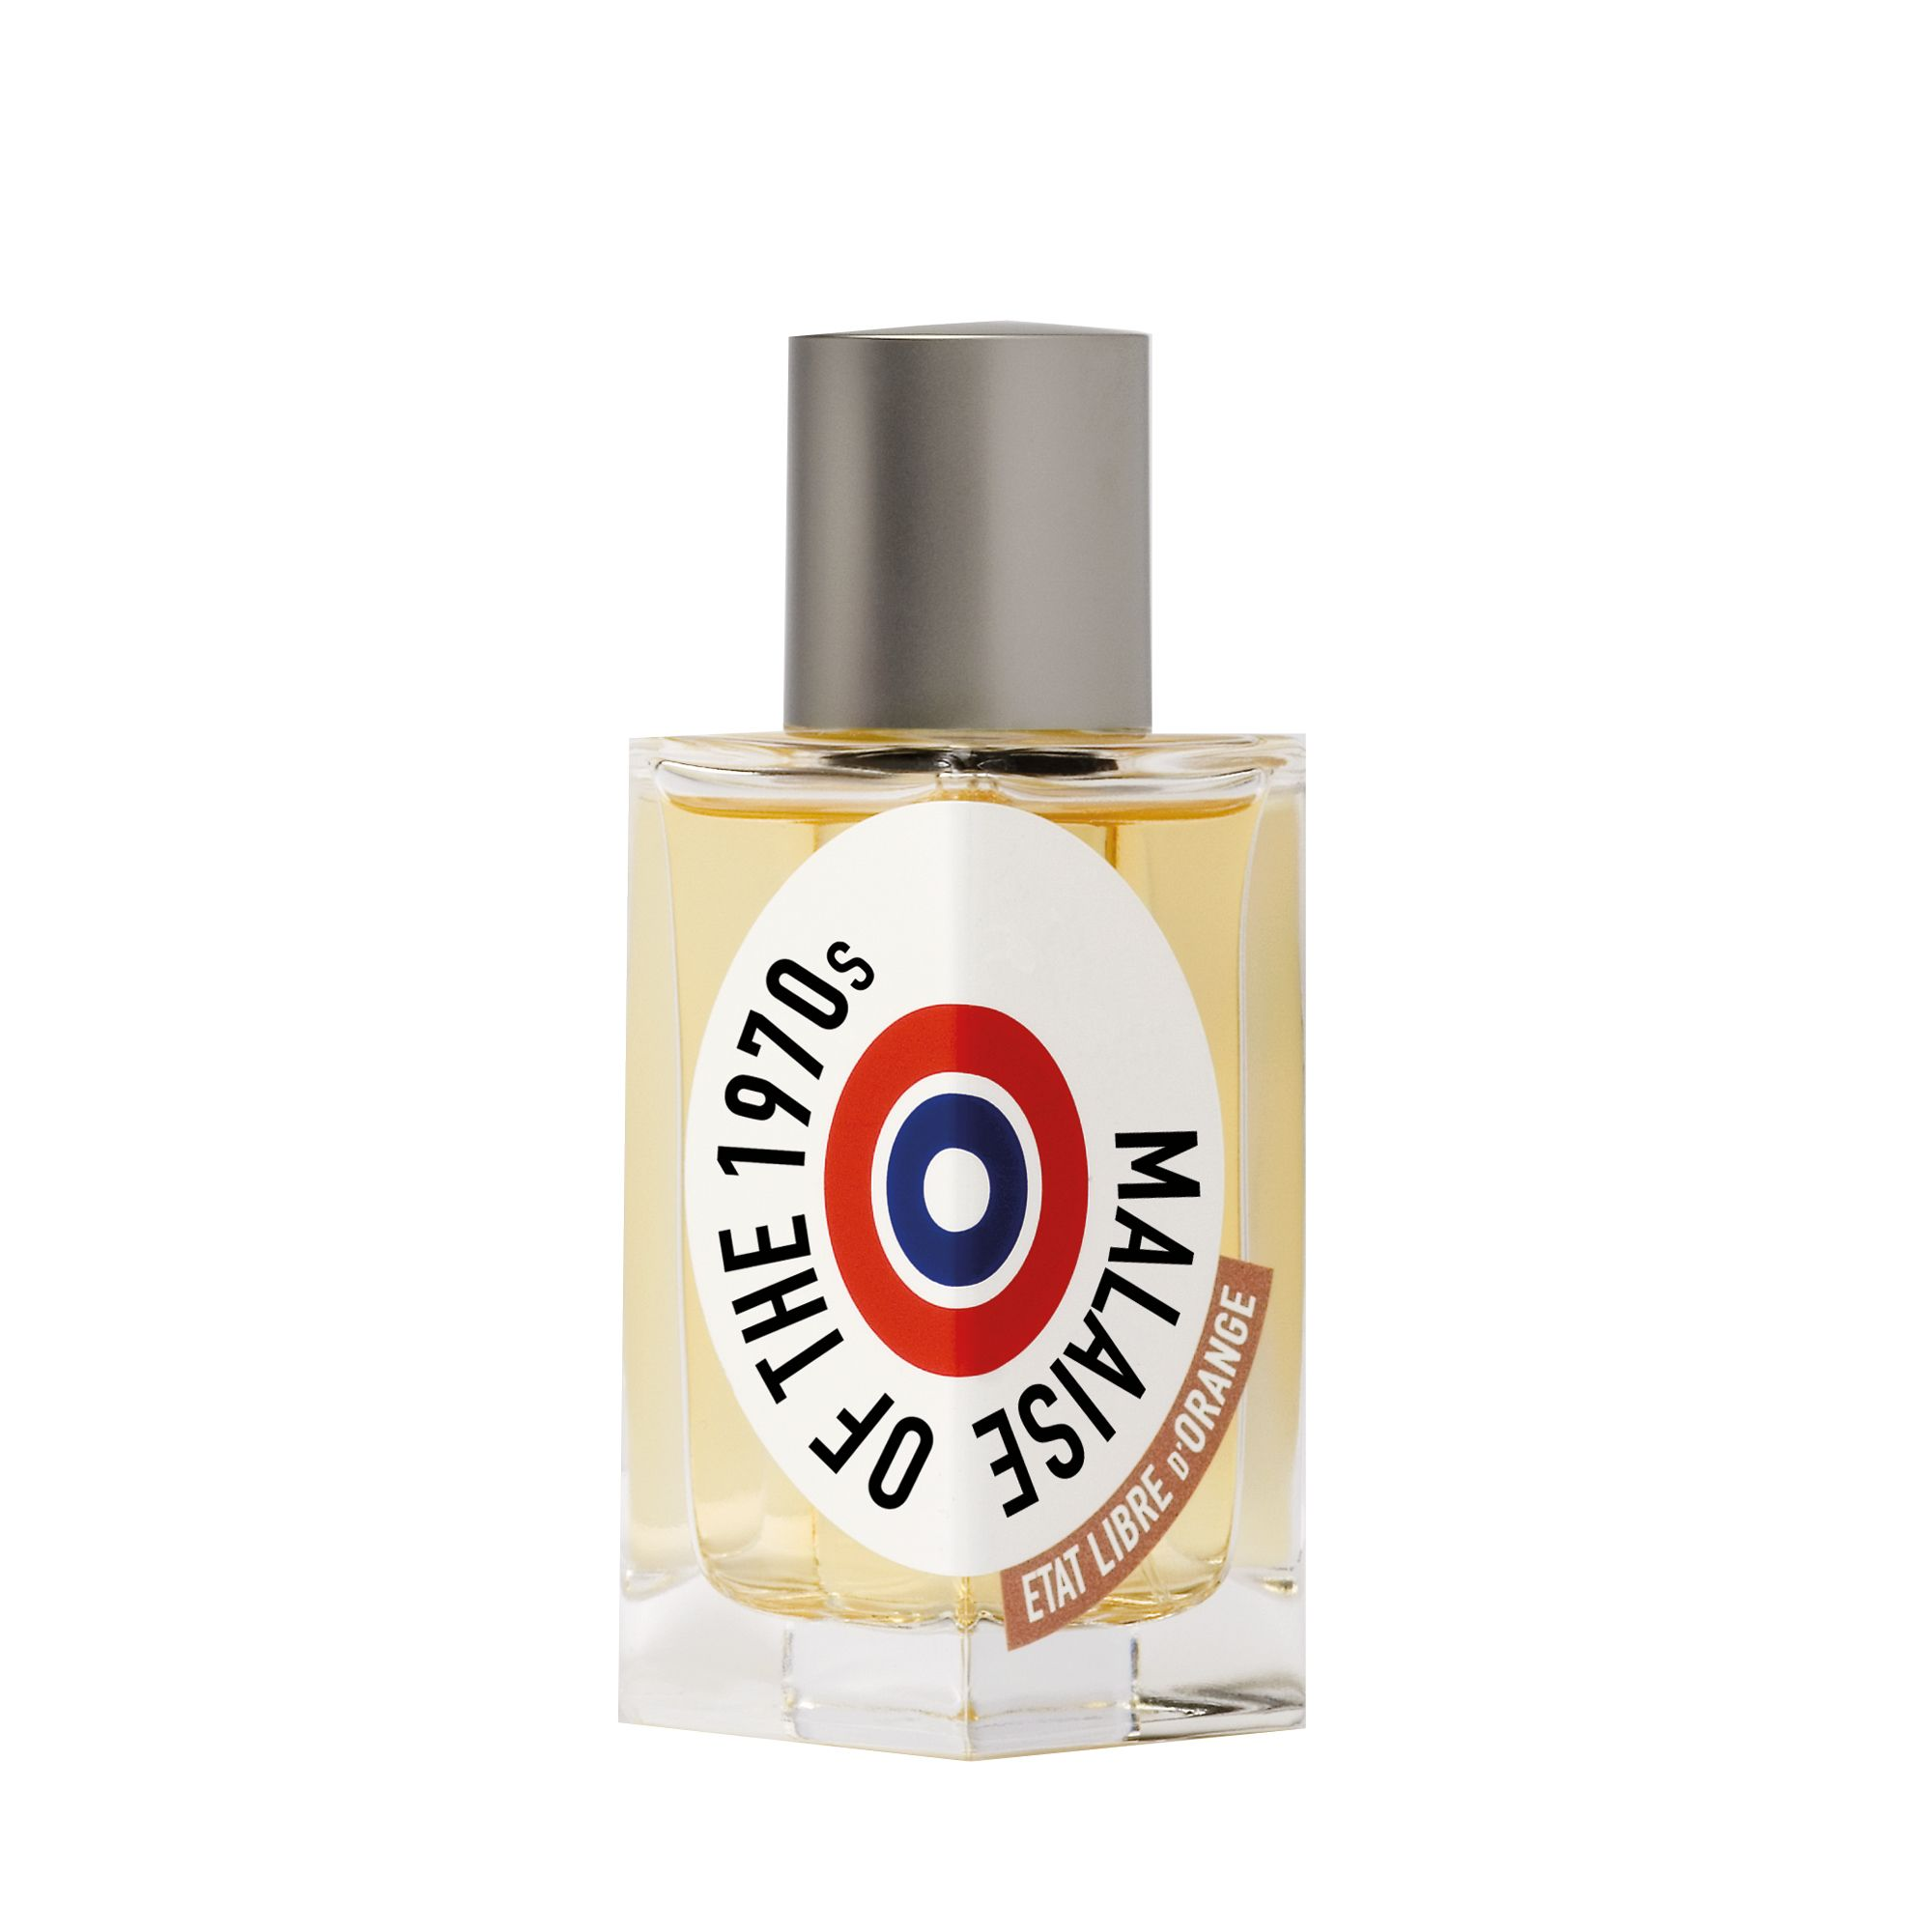 Etat Libre d'Orange Etat Libre d'Orange Malaise of the 1970`s Eau de Parfum 50ml